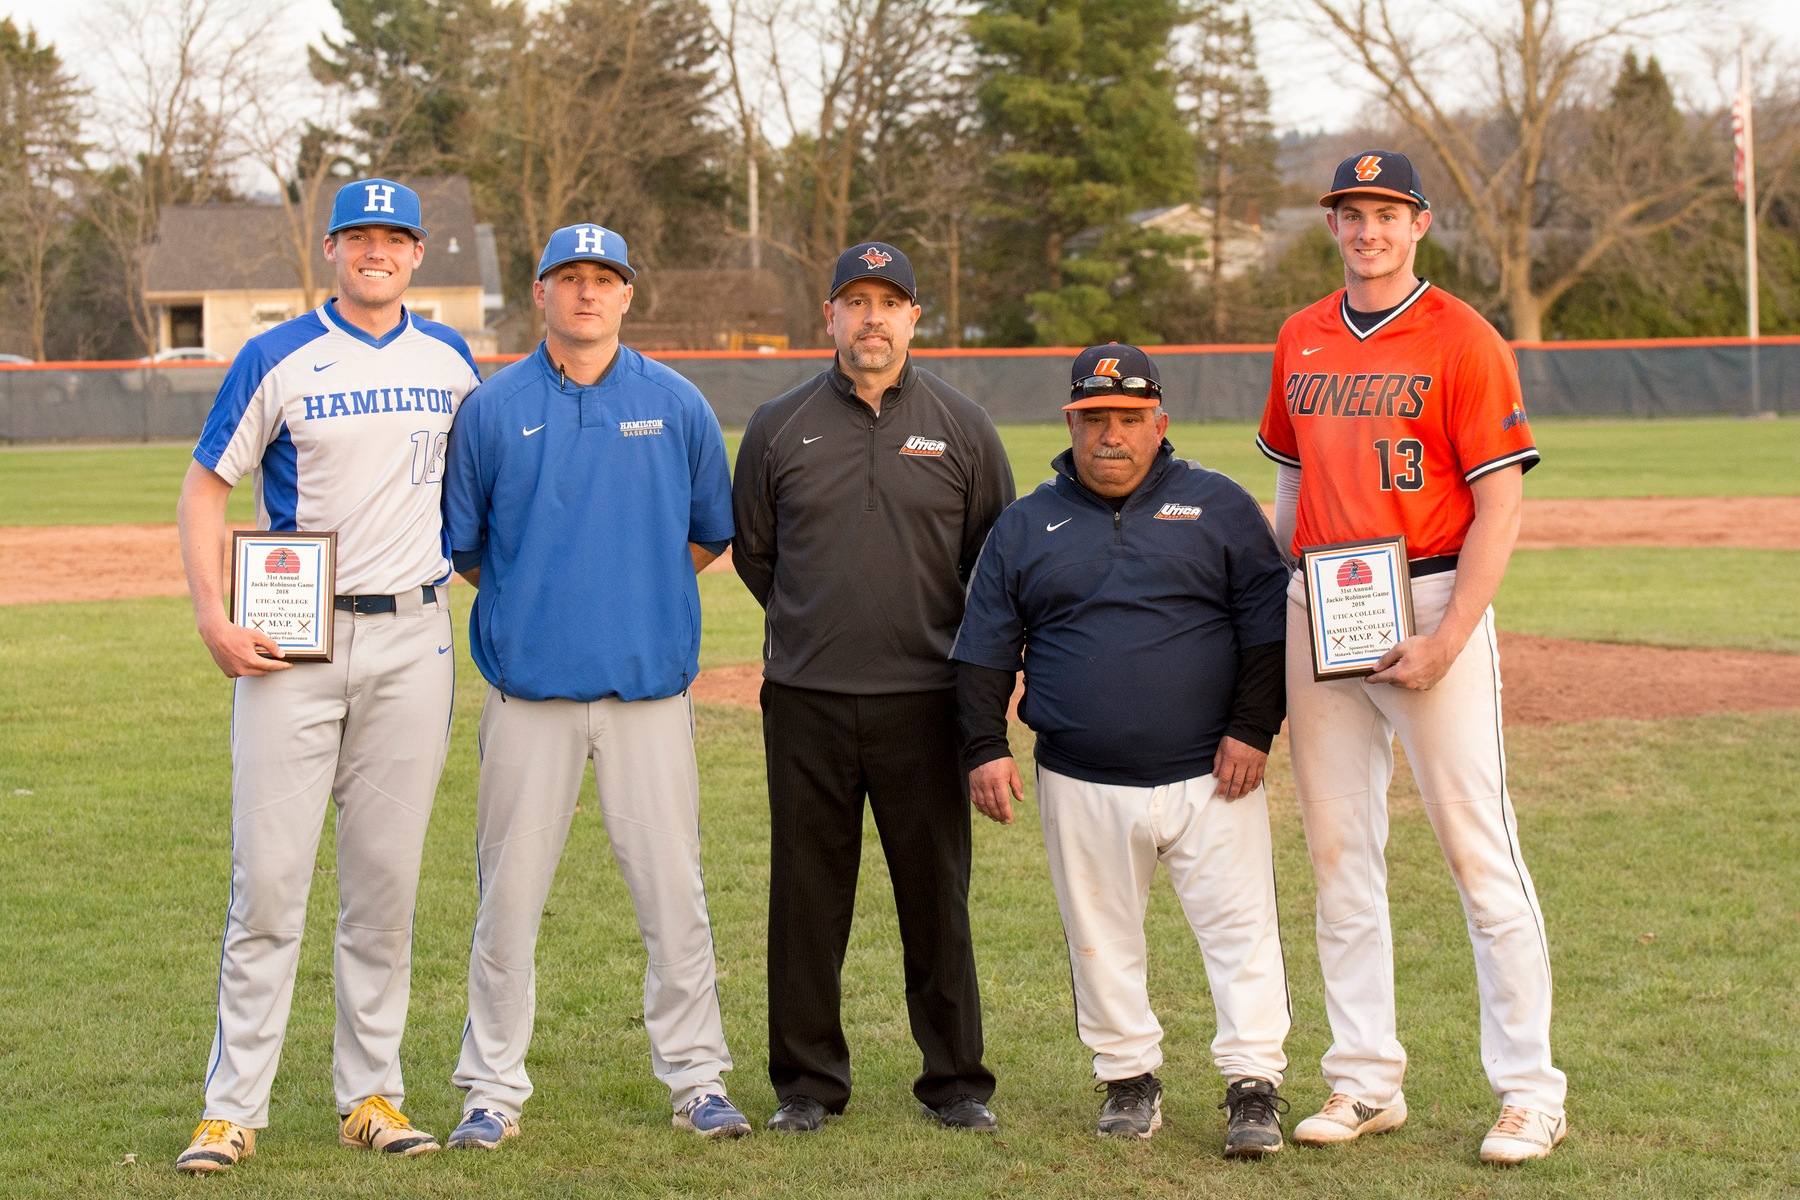 (Left to right) Hamilton MVP Spencer Vogelbach '18, head coach Tim Byrnes, Utica College Director of Athletics Dave Fontaine, Utica head coach Joe Milazzo and Utica MVP Tim Quinlan (photo courtesy Utica College sports information).